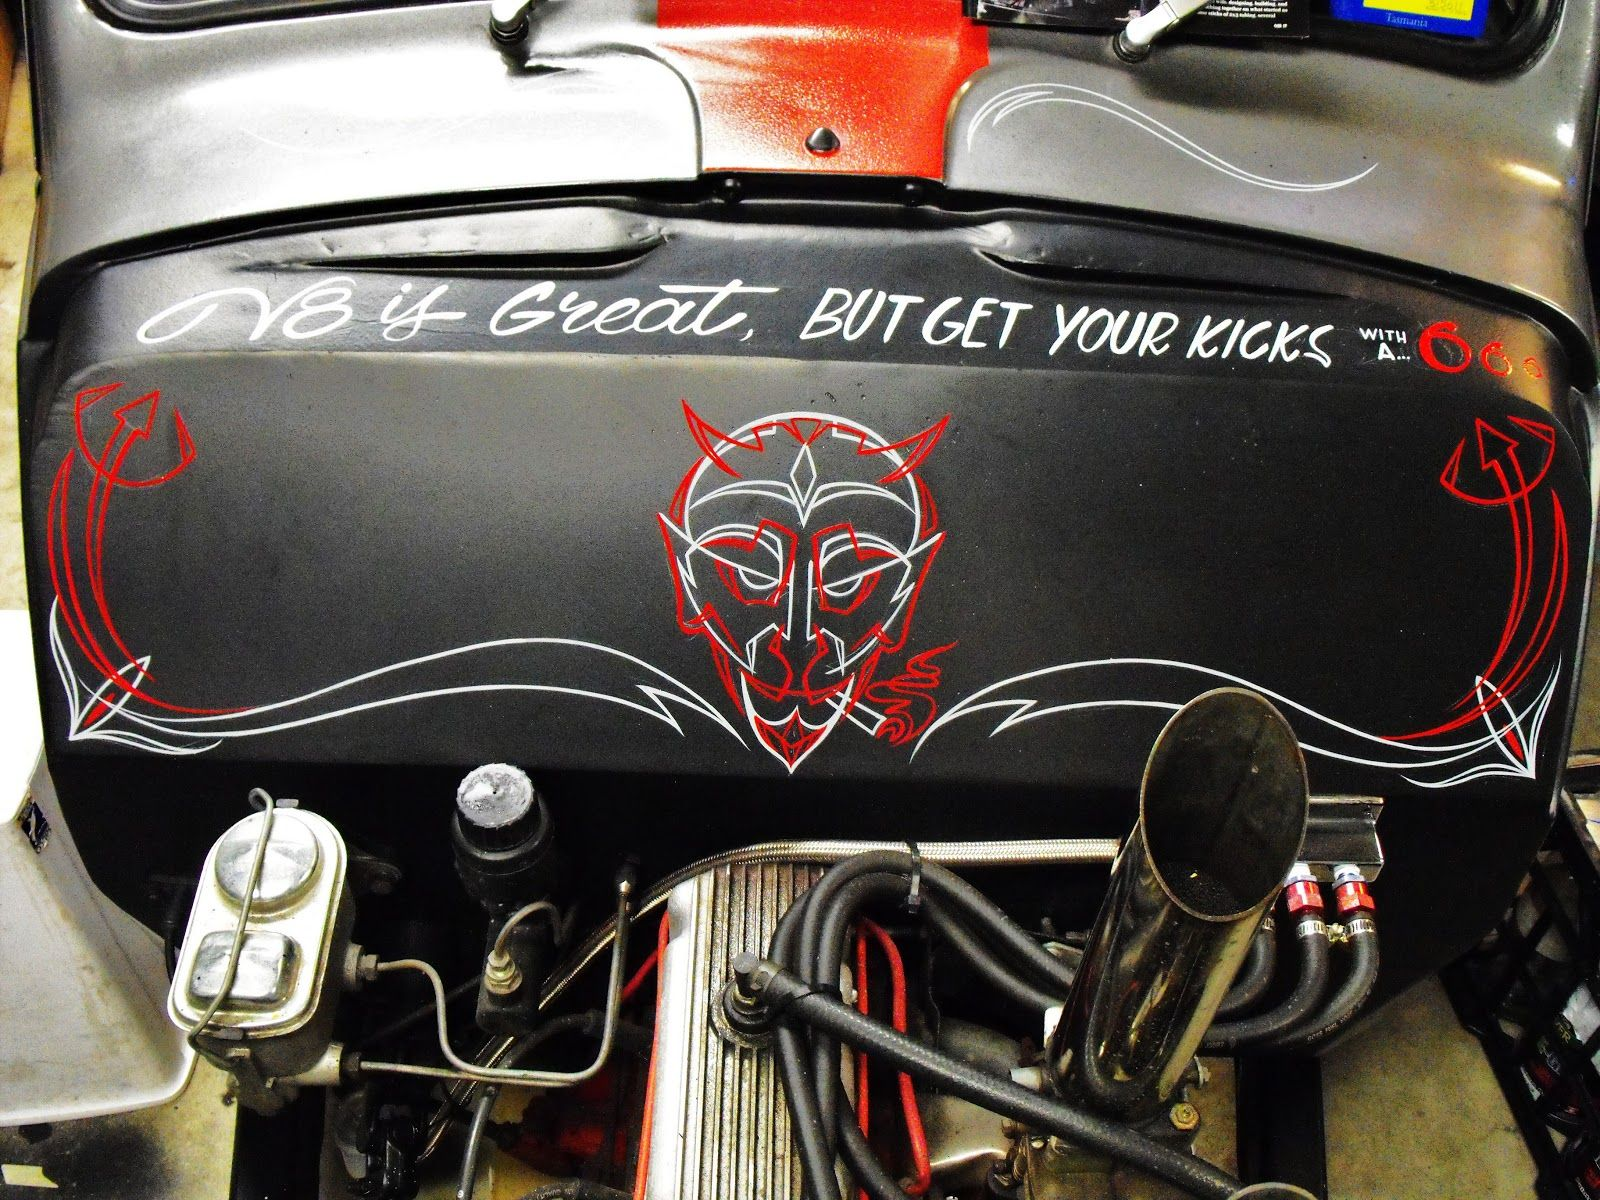 Pin By Carlos Caramba On Older Pinterest Curves And Woman - Vinyl stripes for motorcyclesmetric cruiser motorcycle graphics decals roadstar fury vstar road